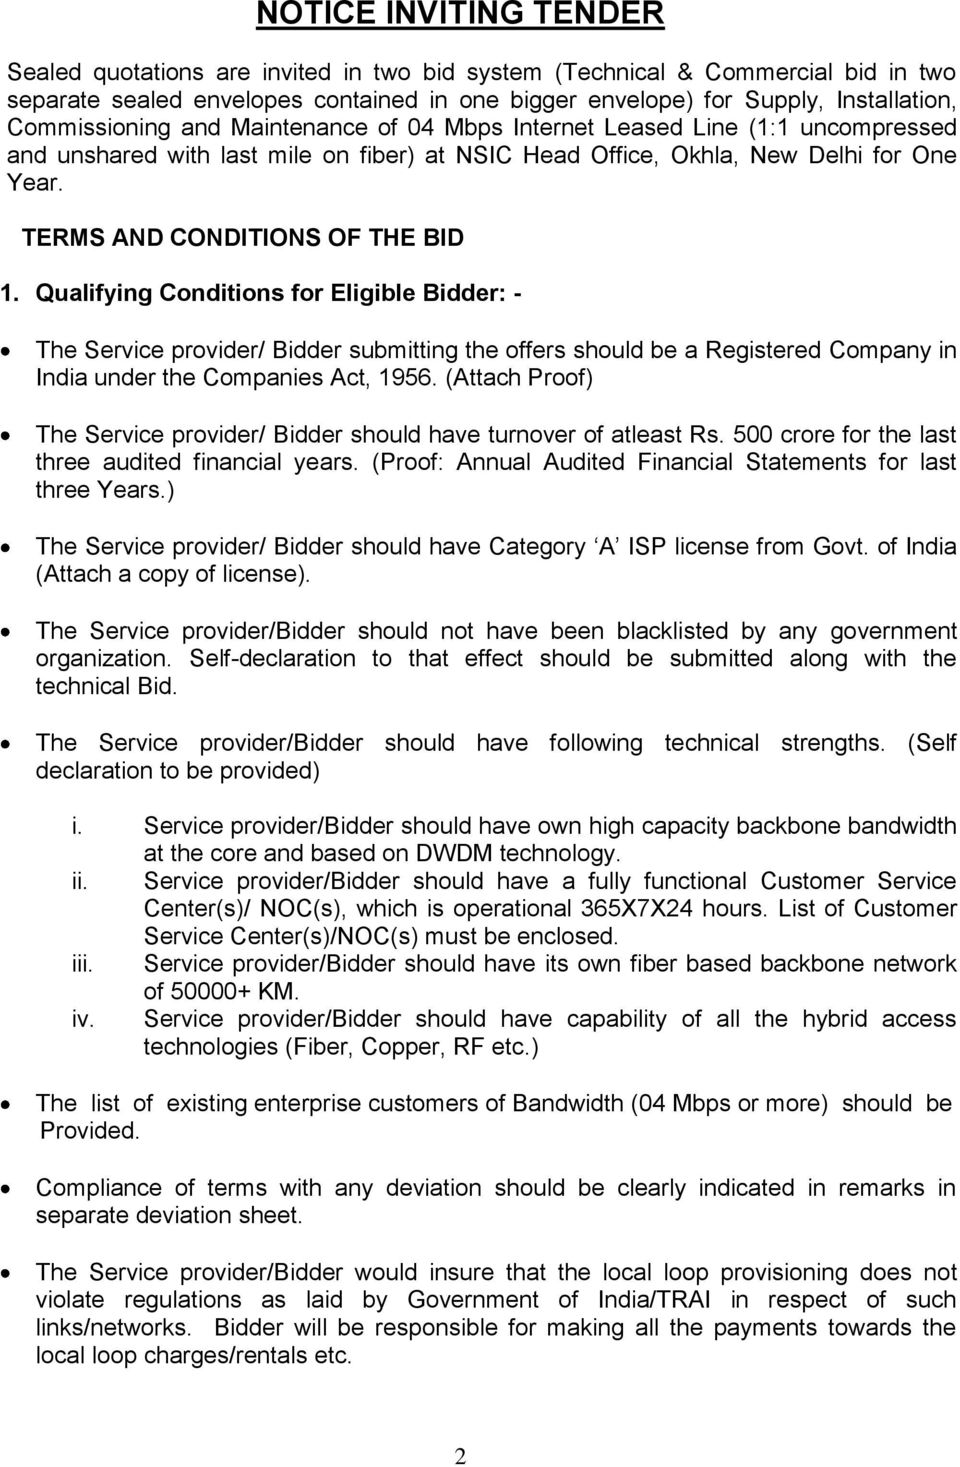 TERMS AND CONDITIONS OF THE BID 1.